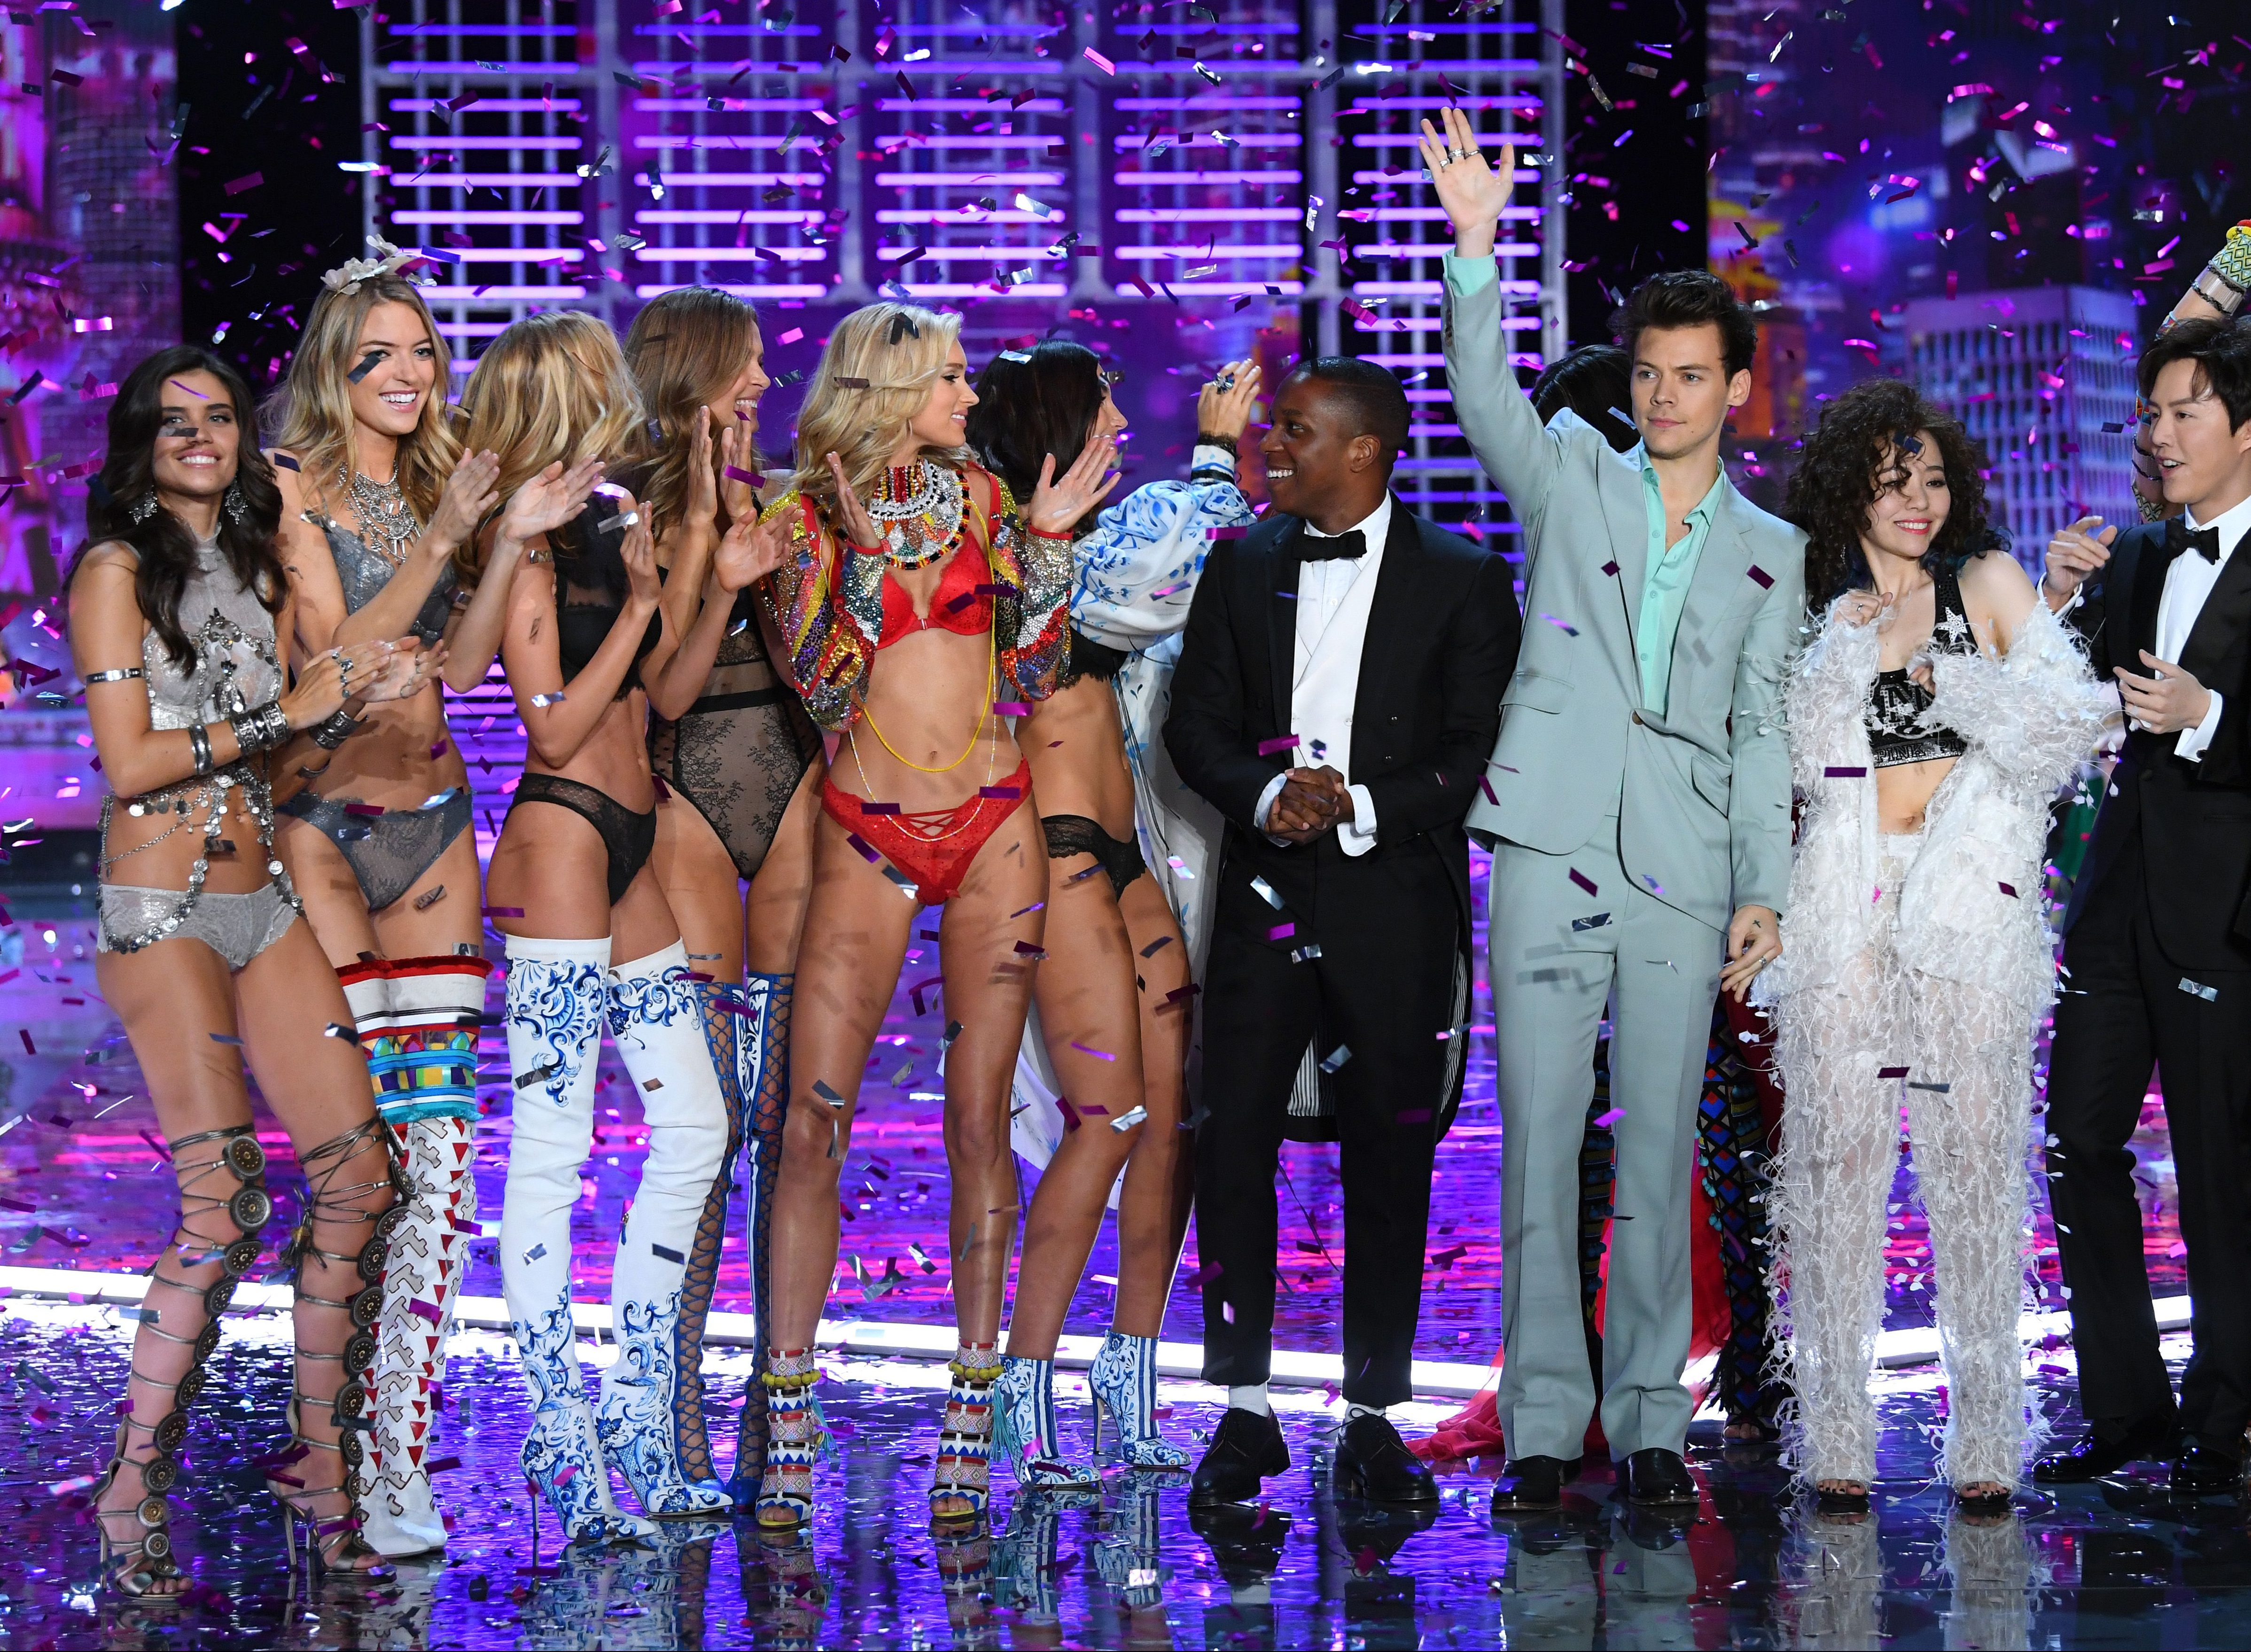 Performers Harry Styles, Larry Odom Jr., Yundi Li, Jane Zhang and models at the show finale.